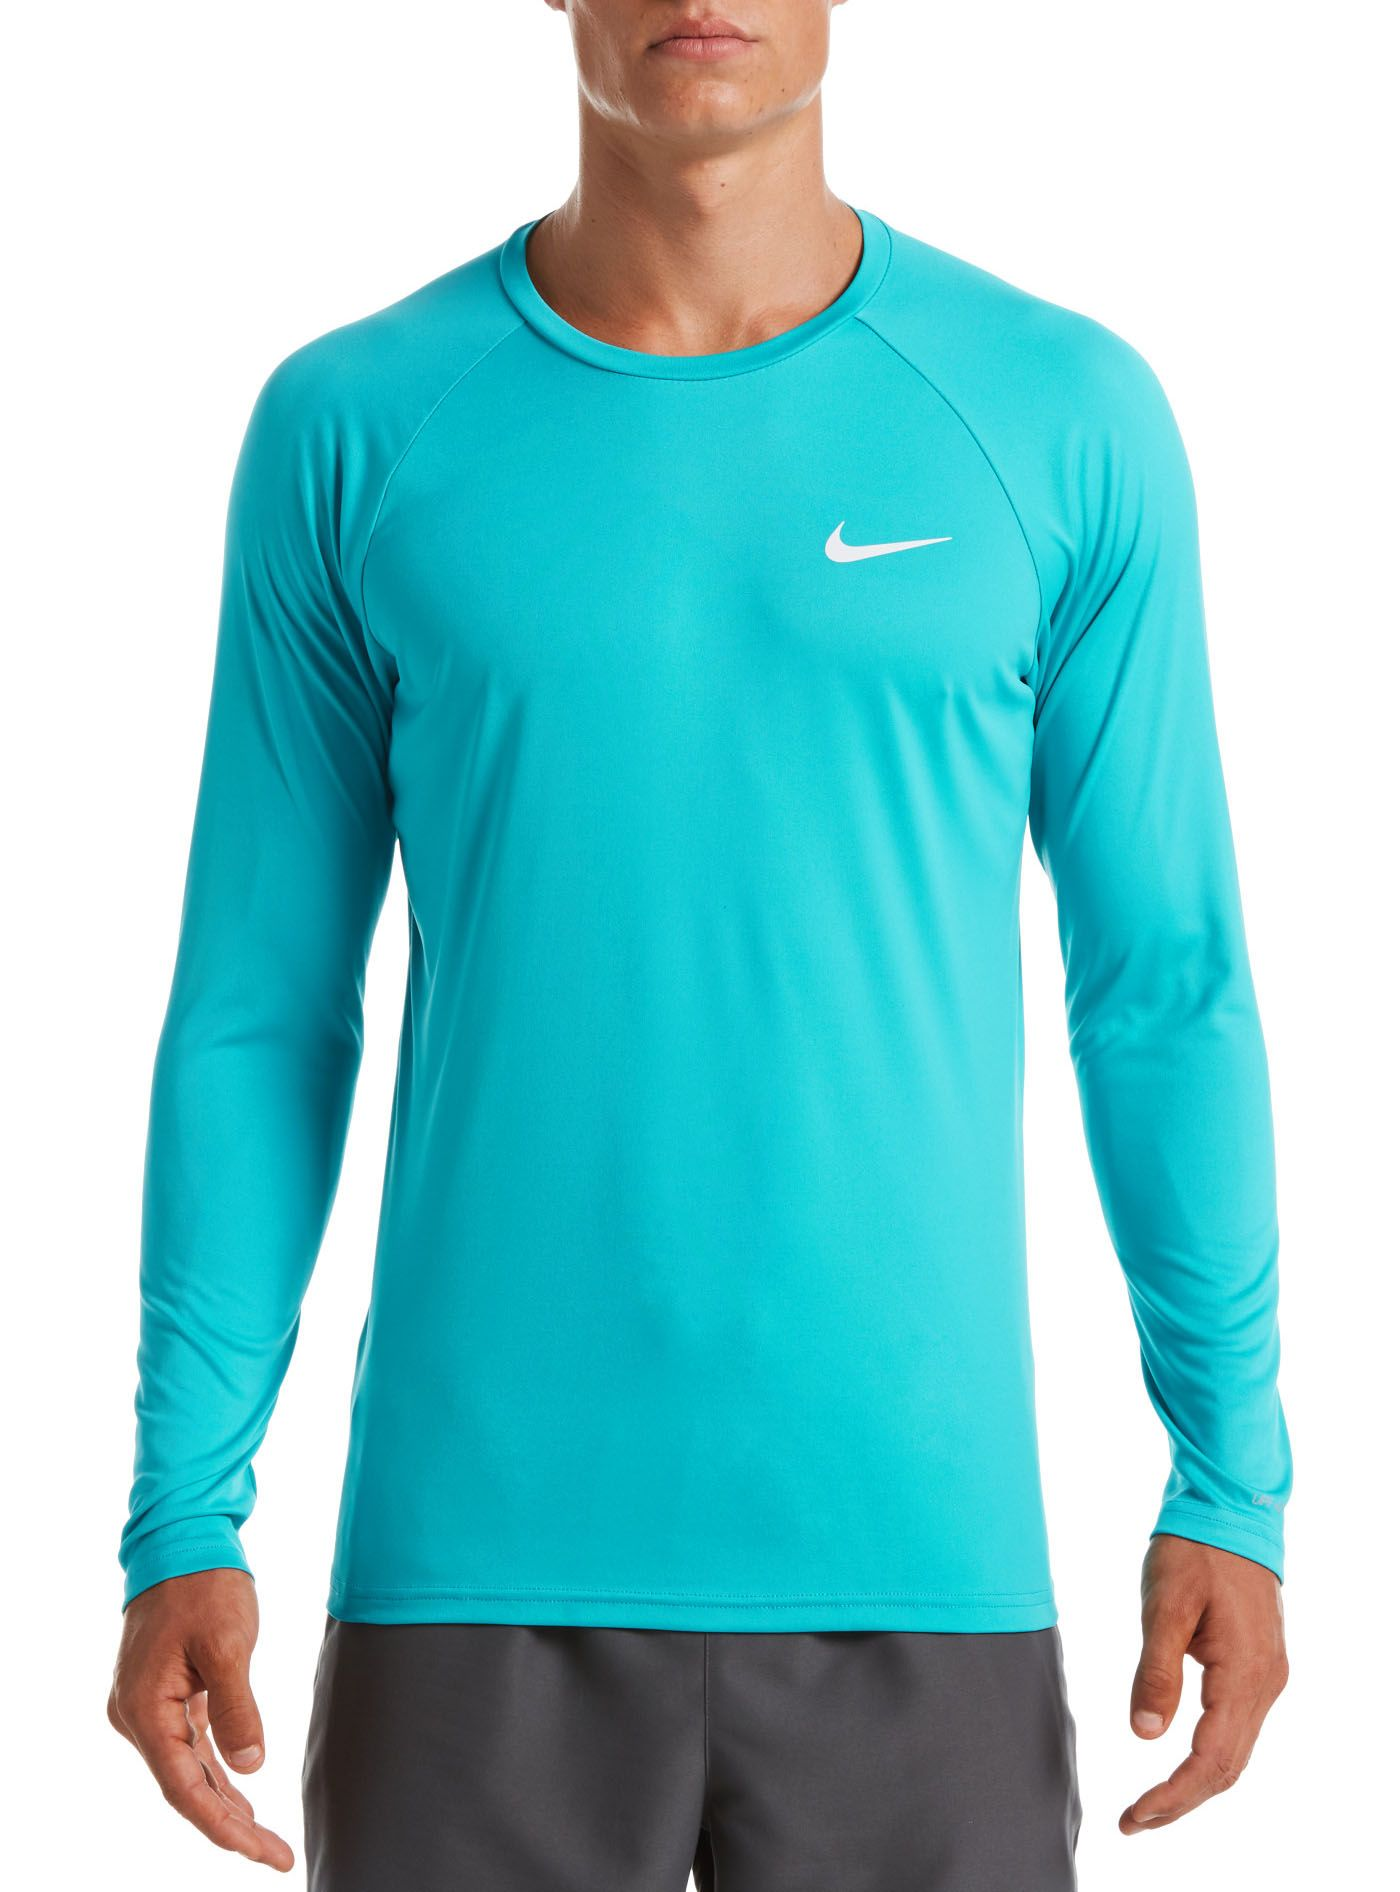 Nike Men's Essential Long Sleeve Hydro Rash Guard